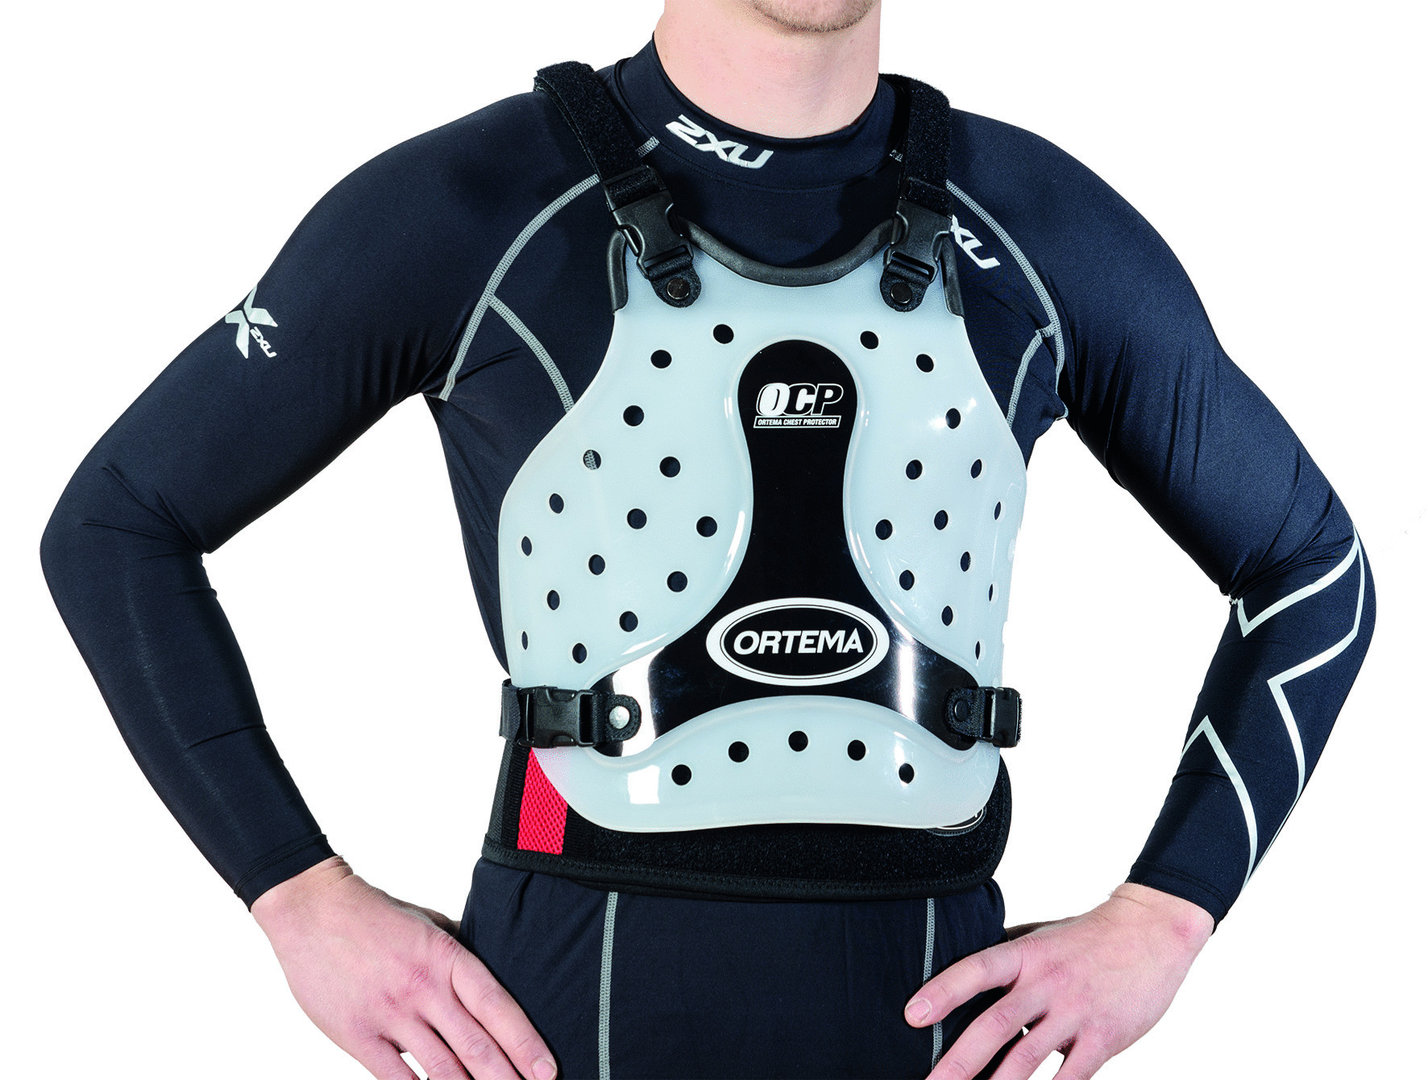 OCP - Ortema Chest Protector mit Gurtsystem